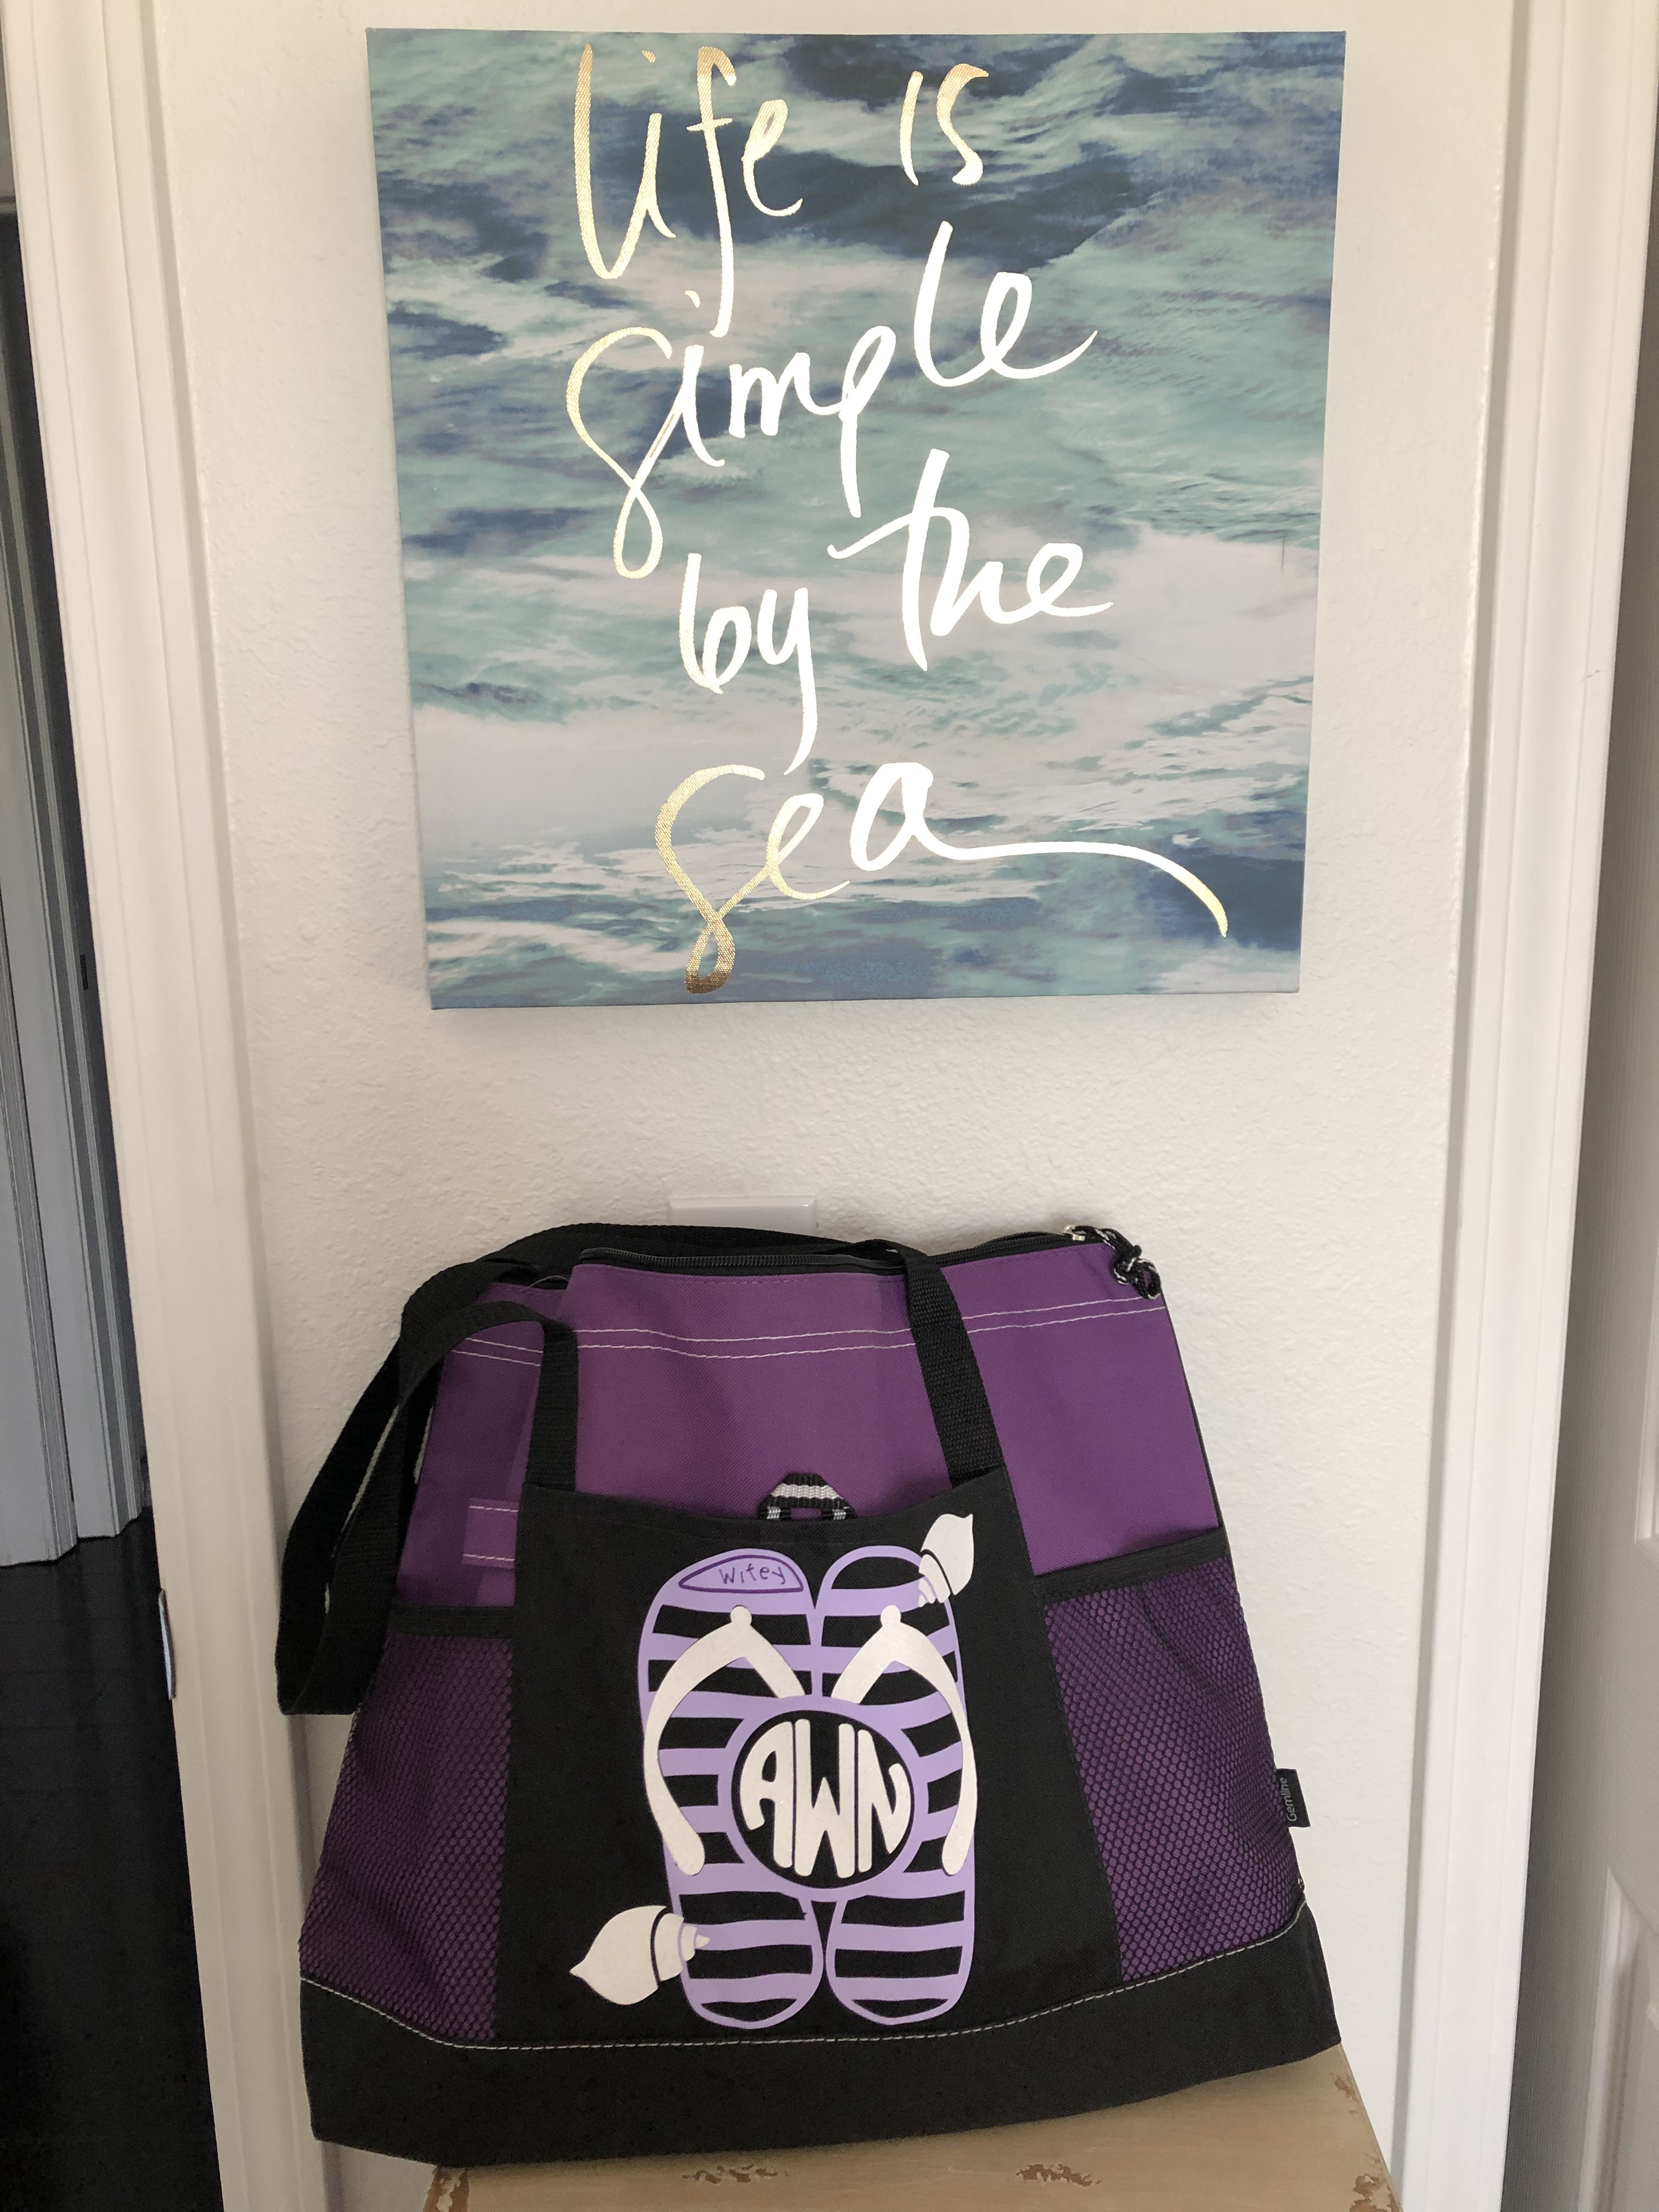 Gemline 1100 customer review by Teresa Robison (Tu s Company) LOVE this tote!